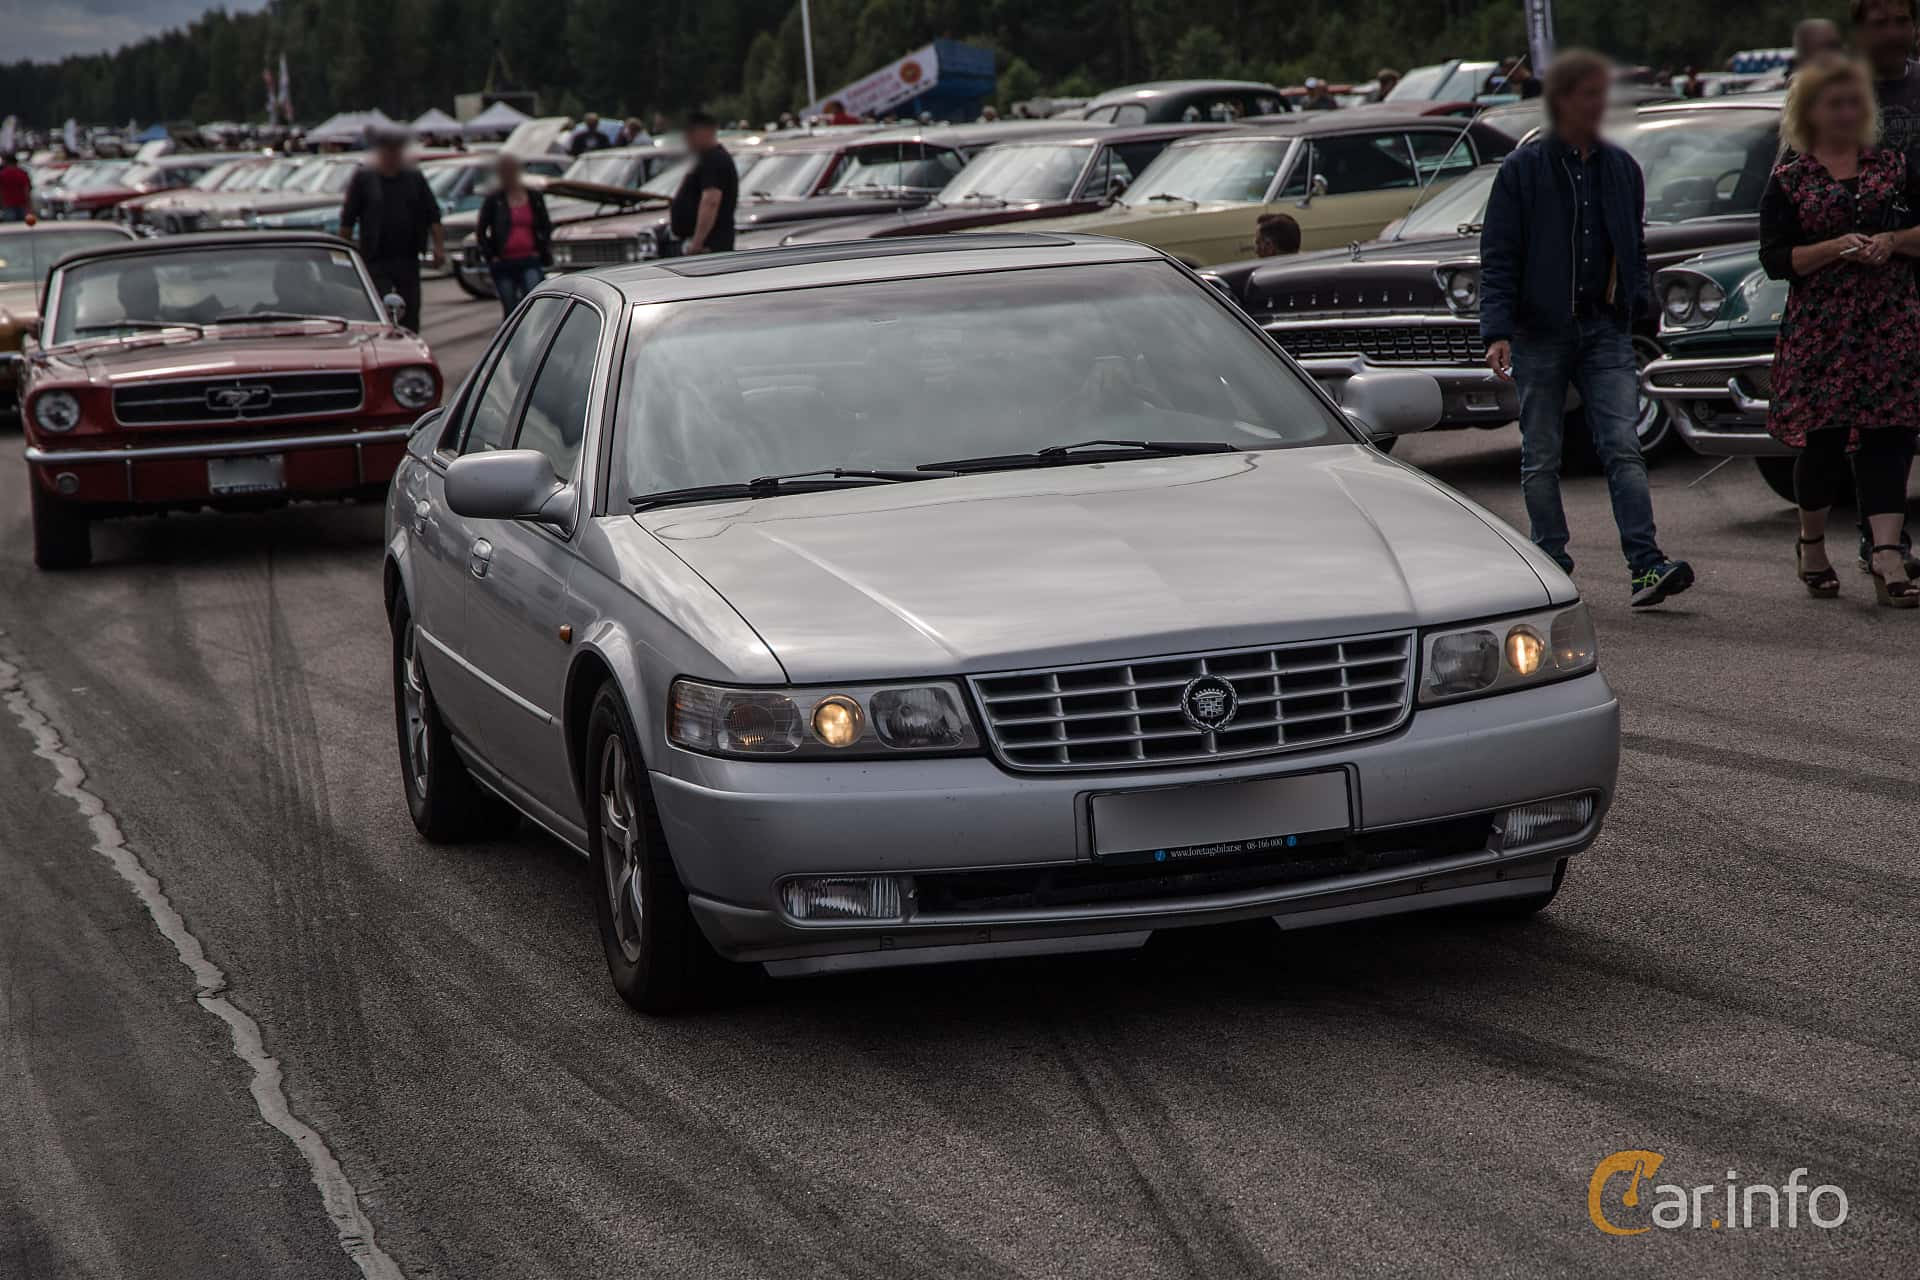 2 Images Of Cadillac Seville Sts 4 6 V8 Automatic 305hp 2000 By Pelle